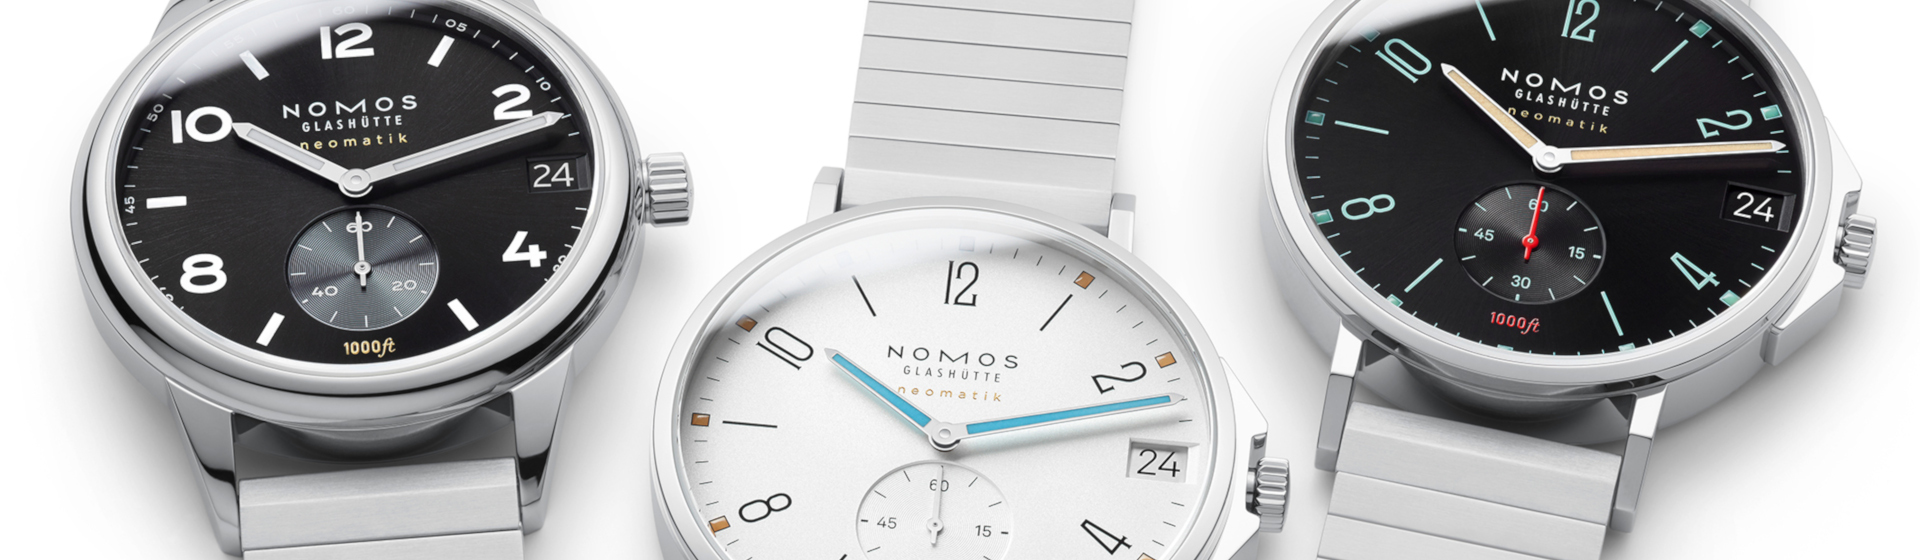 026_NOMOS_Tangente_Club_Sport_neomatik_42_date_group_lying